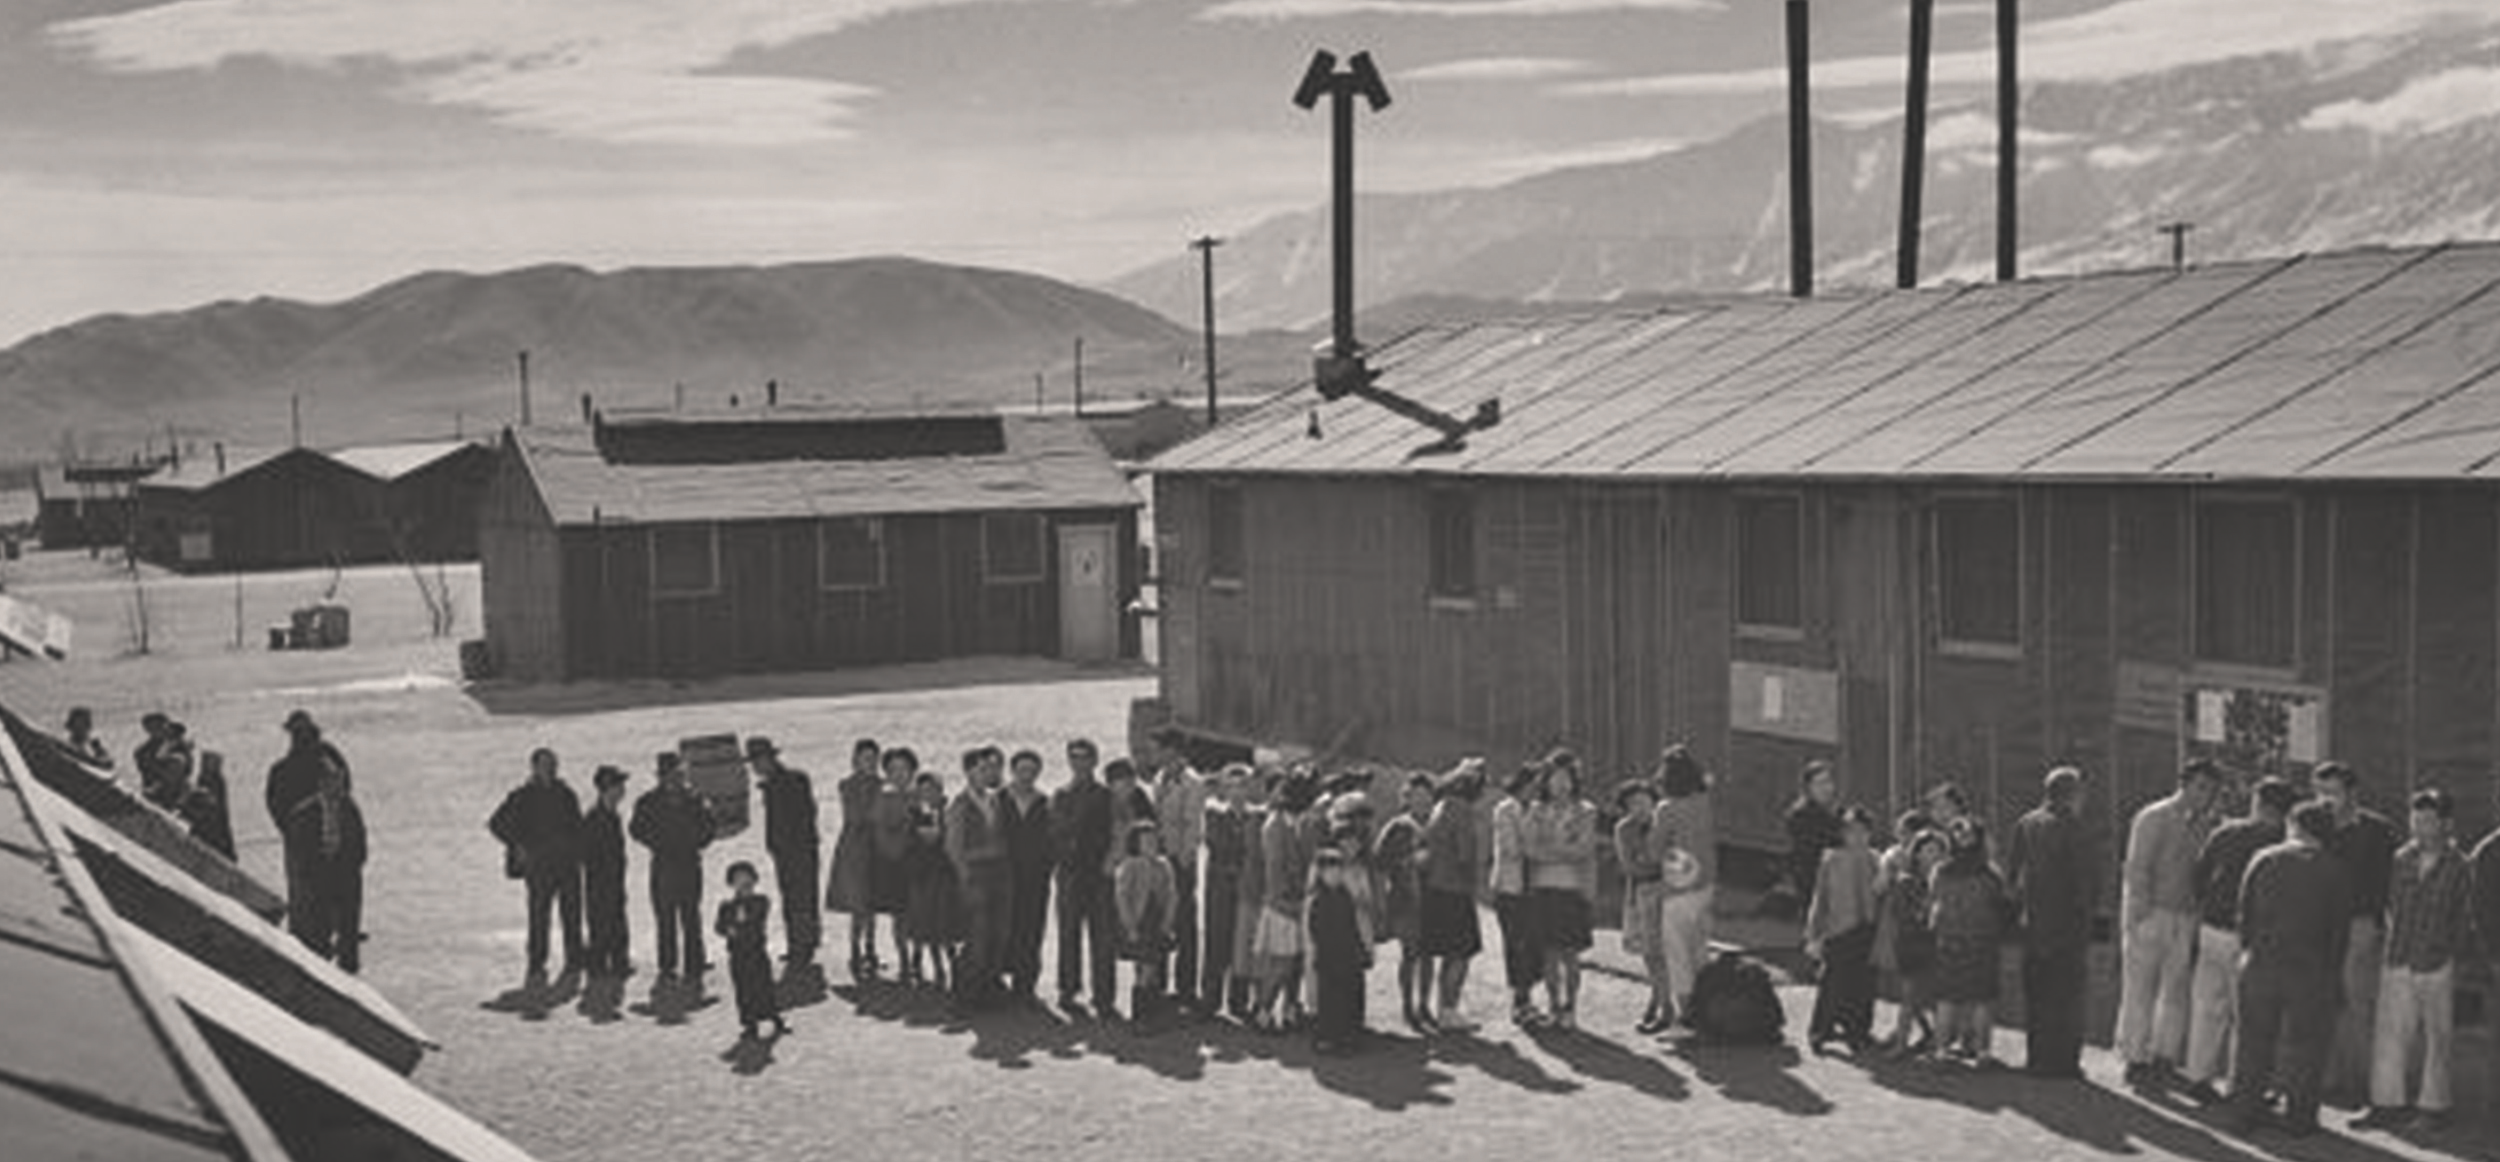 Japanese-Americans lined up at an internment camp